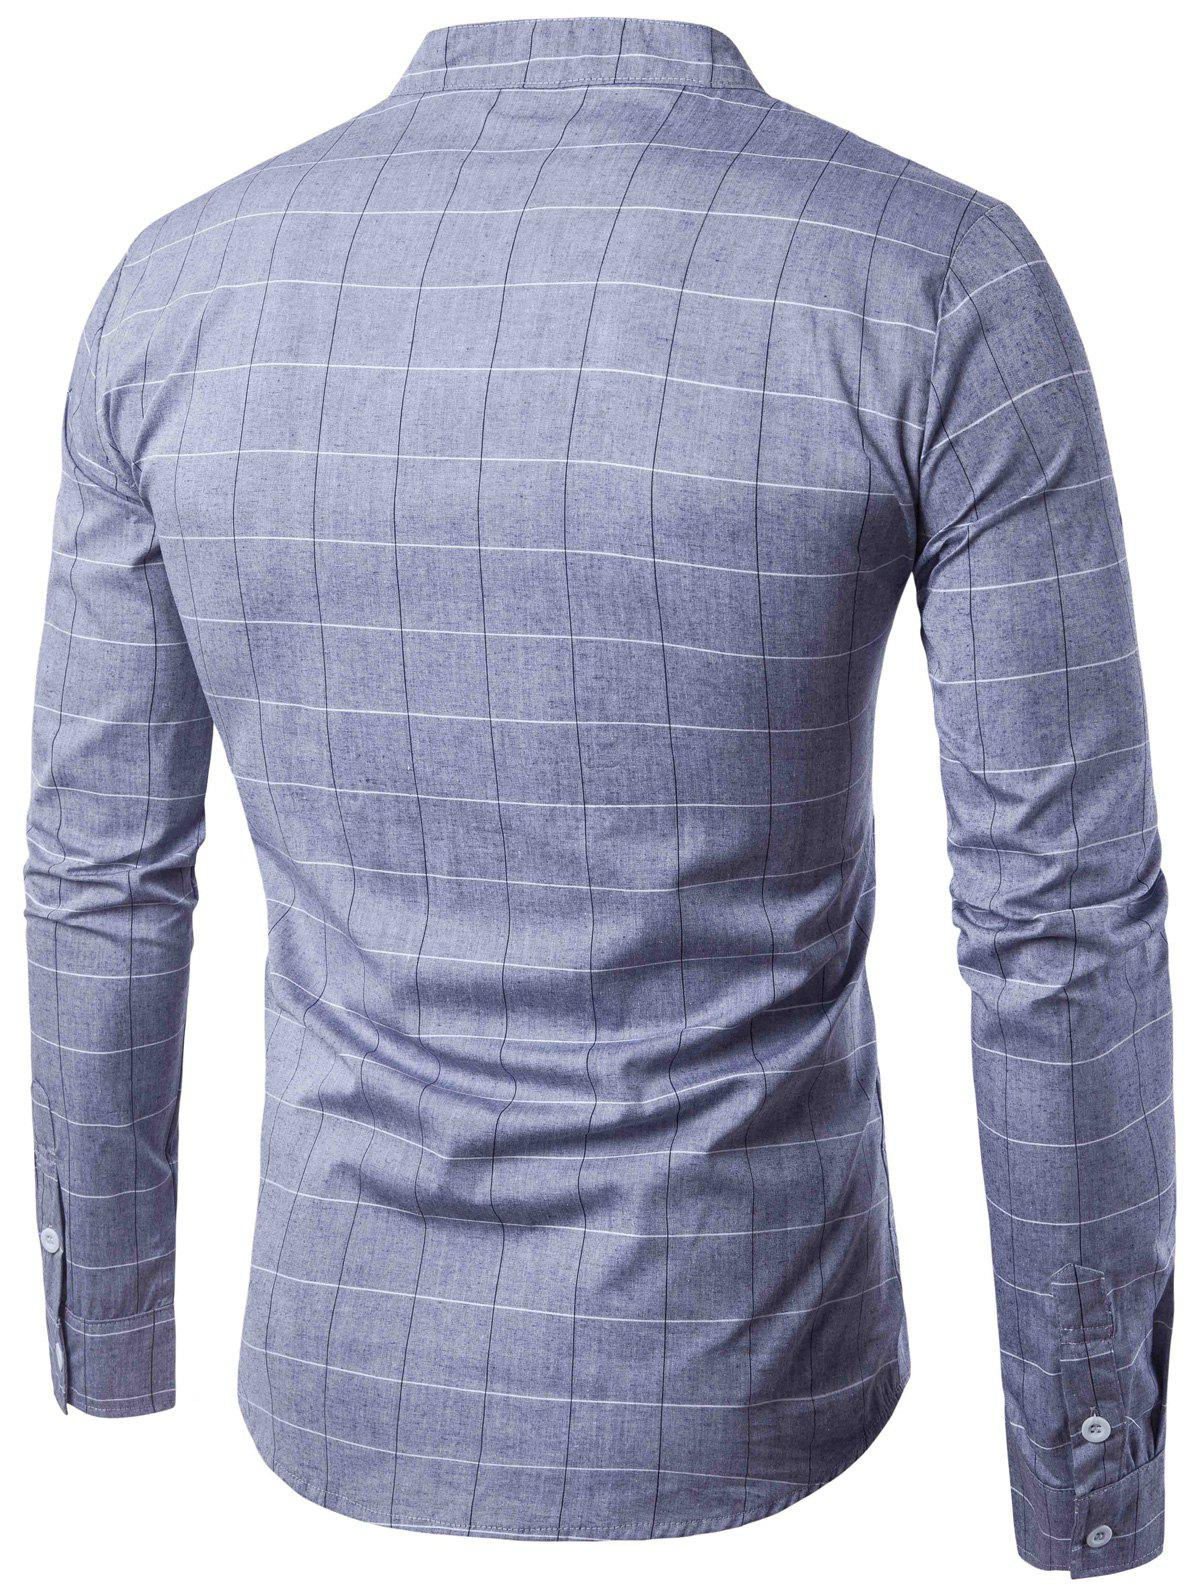 2018 pu leather applique long sleeve checked shirt gray l for Applique shirts for sale